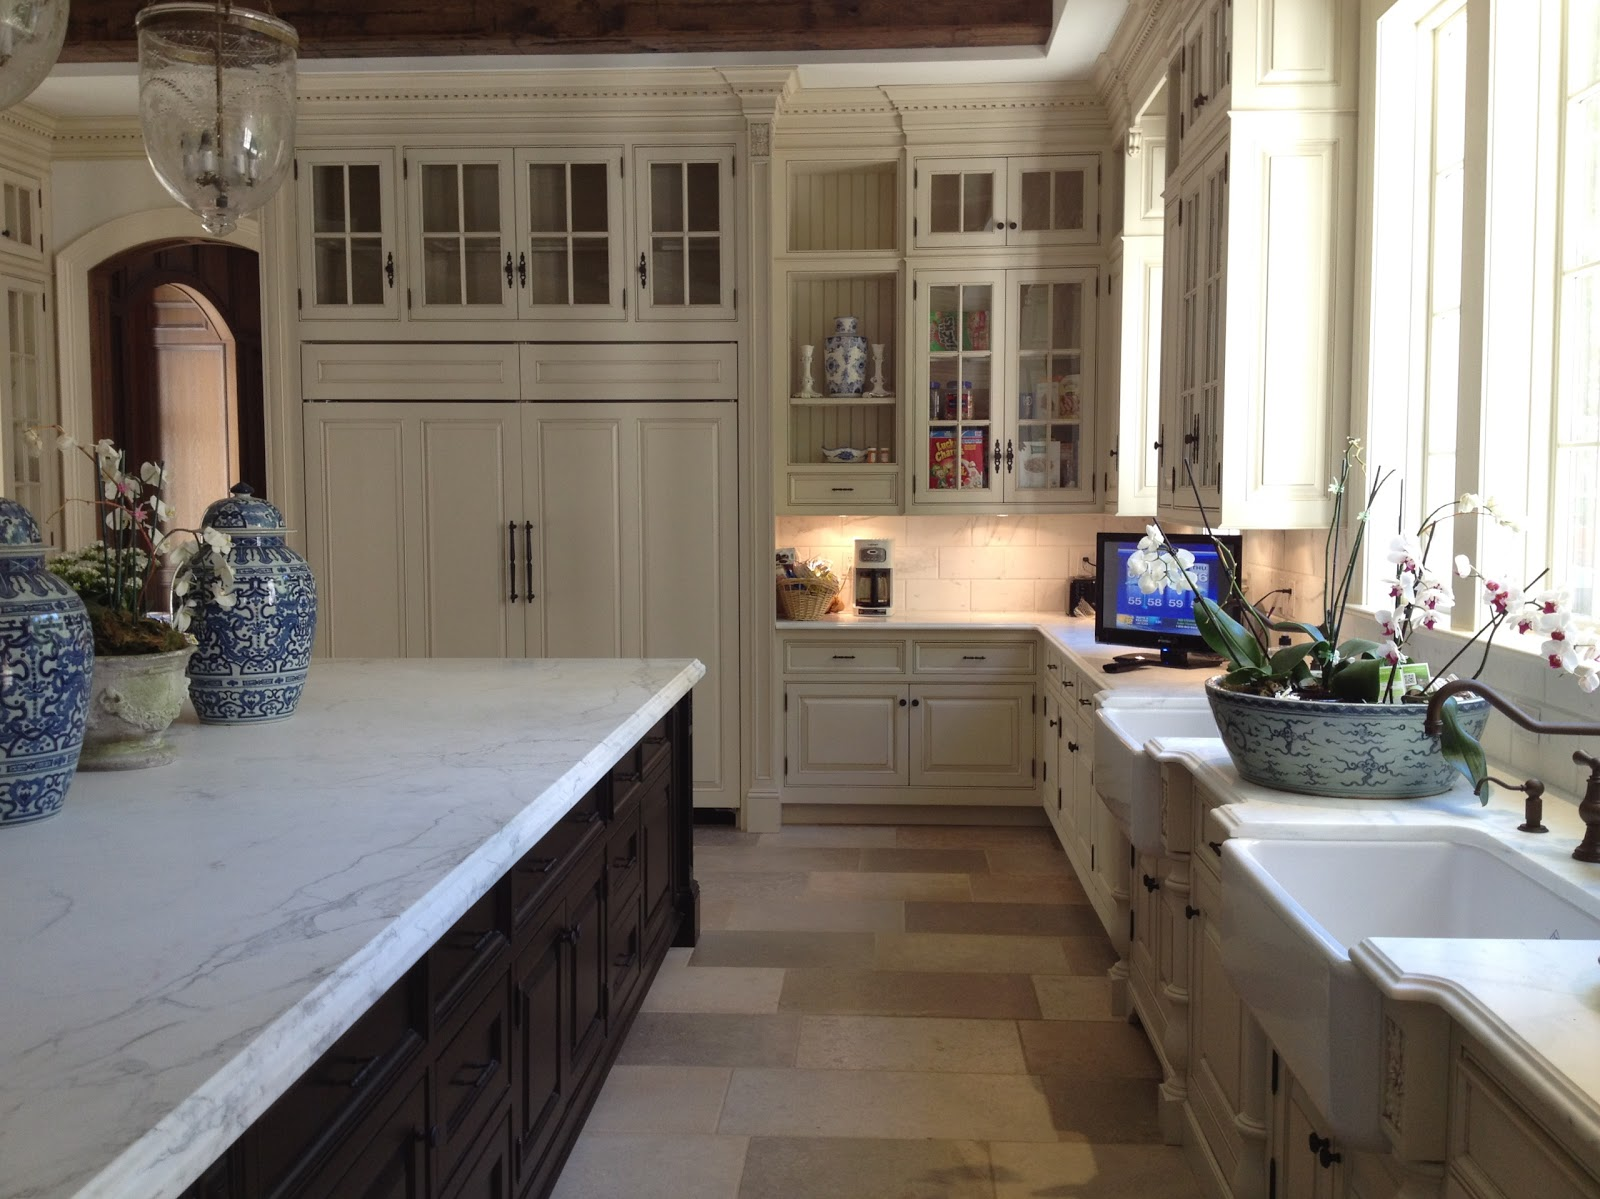 White Marble Kitchen Floor 25 Marbleous Reasons Why I Love White Marble Enchanted